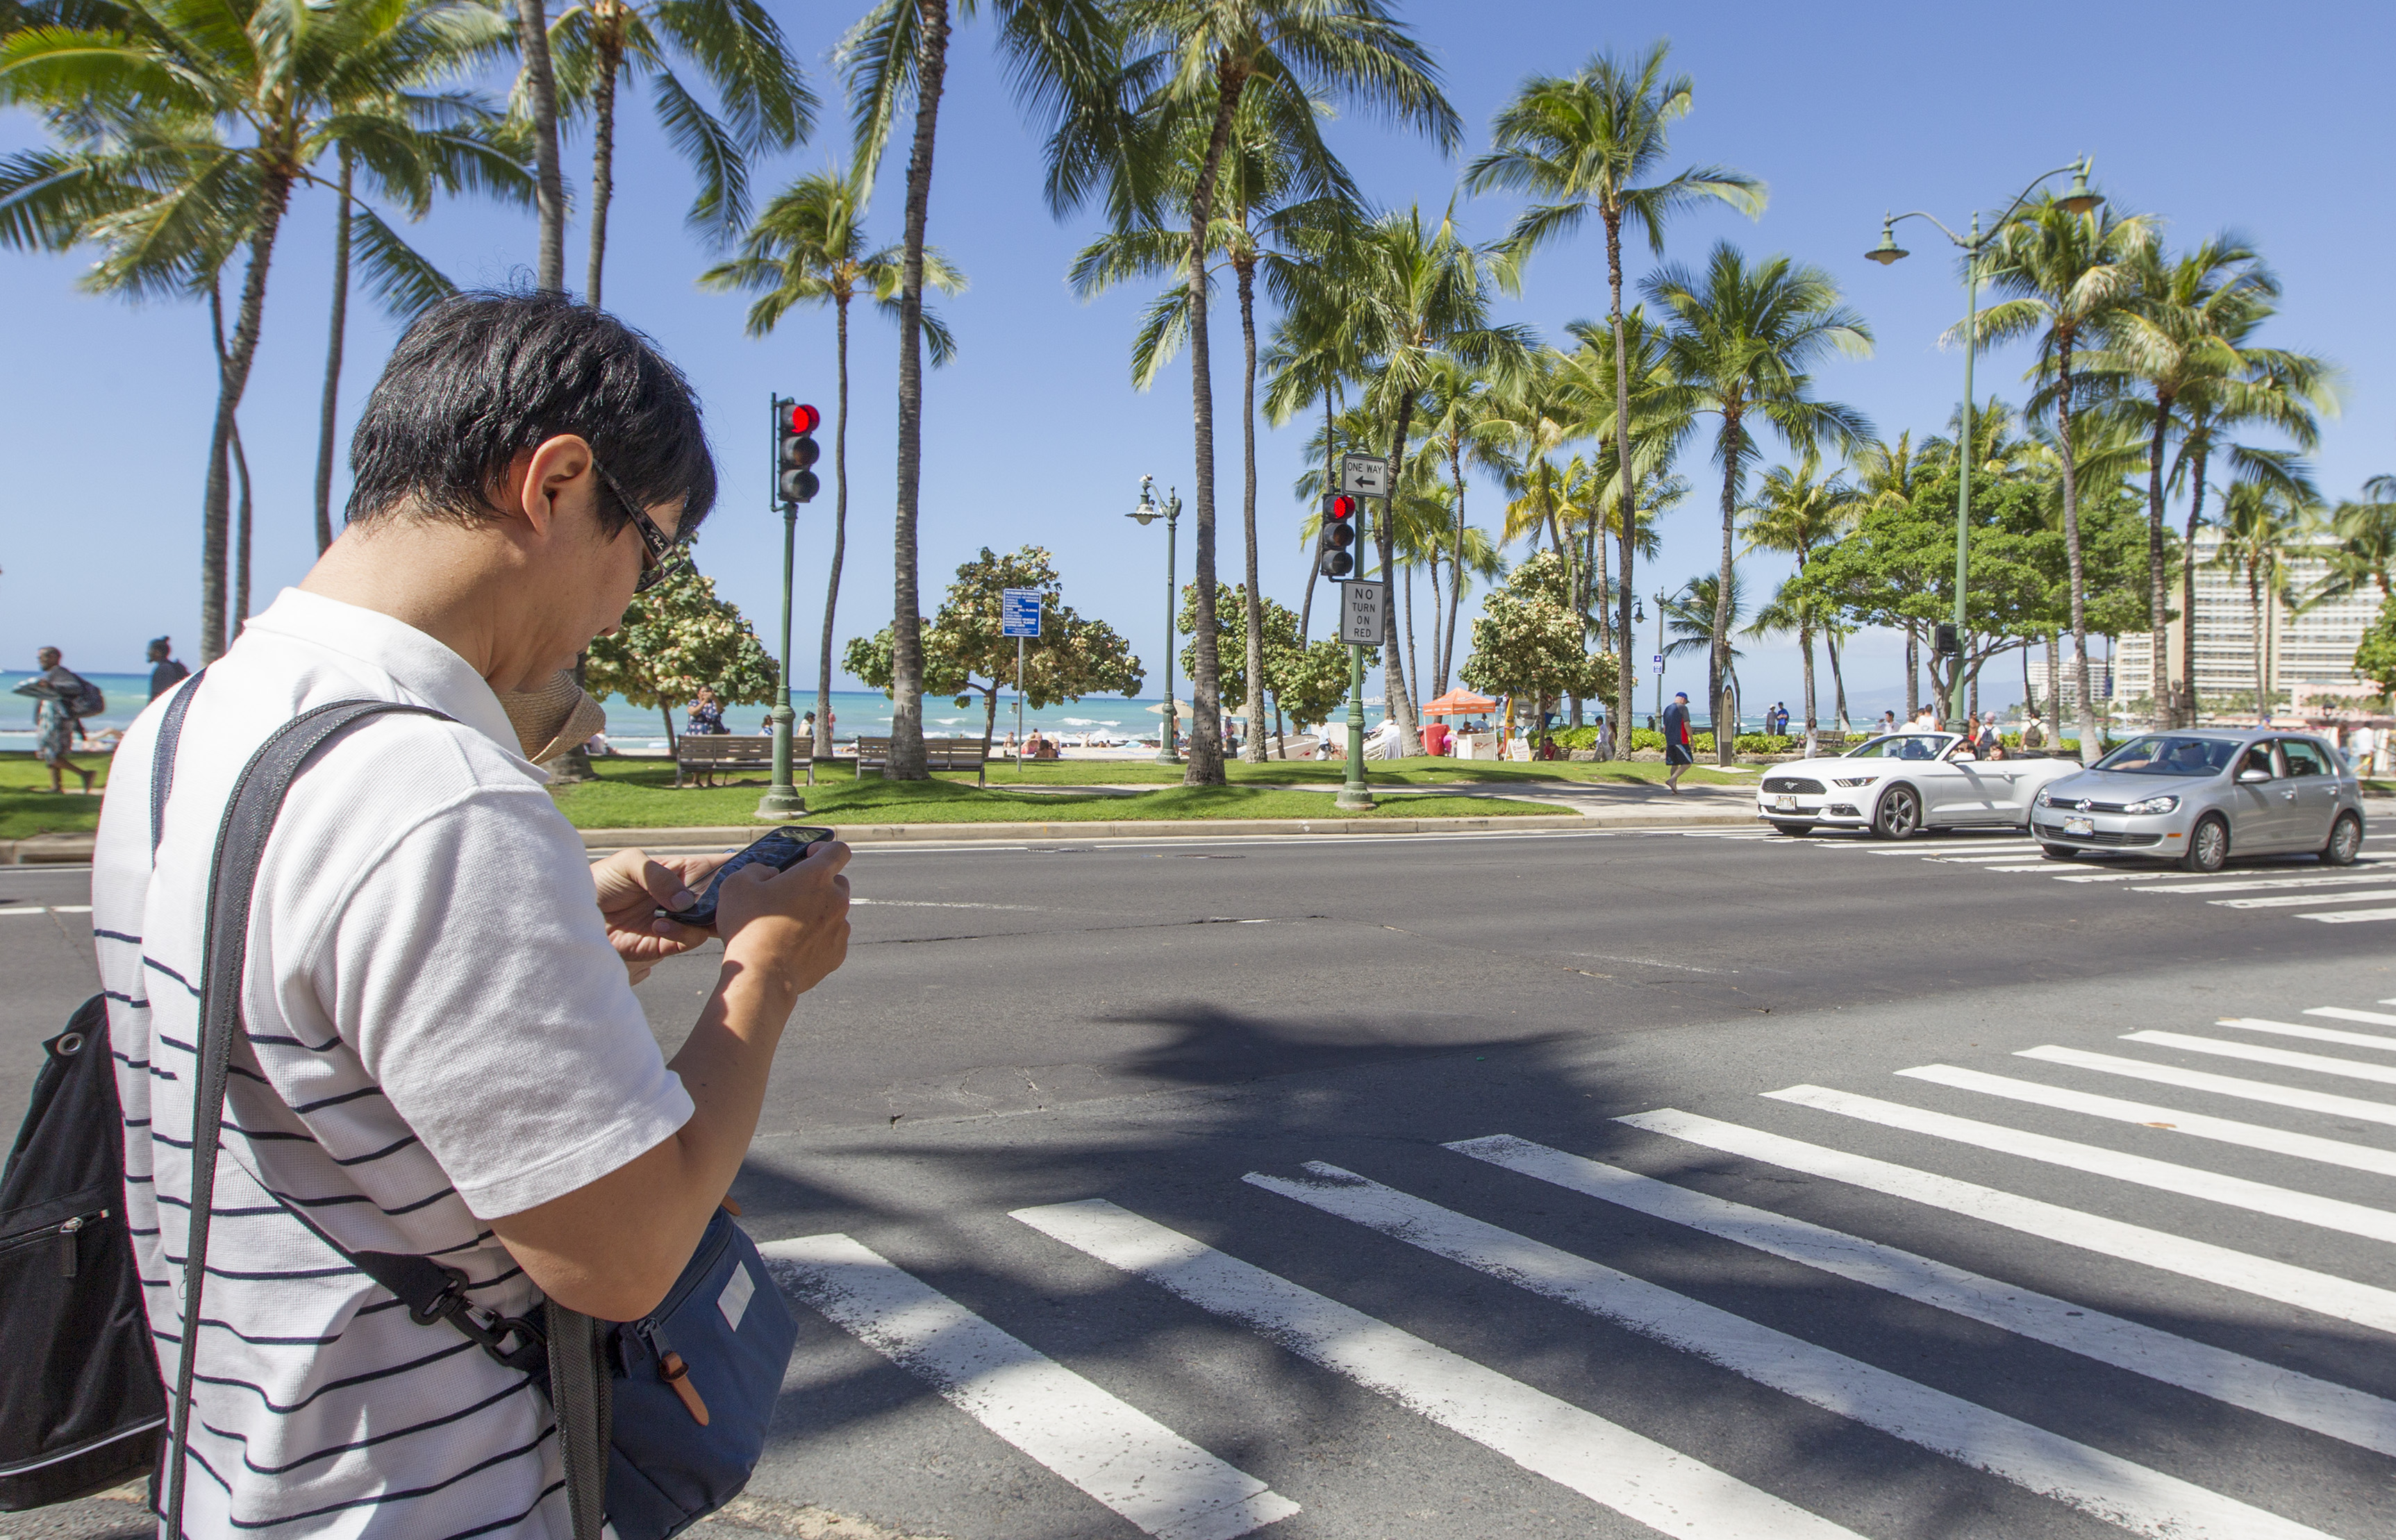 A visitor texts before crossing the street in Waikiki Tuesday, October 24, 2017 in Honolulu, Hawaii.                    The Honolulu Police Department will start enforcing The City and County of Honolulu's newest law against looking or texting on your cell phone while using a crosswalk.